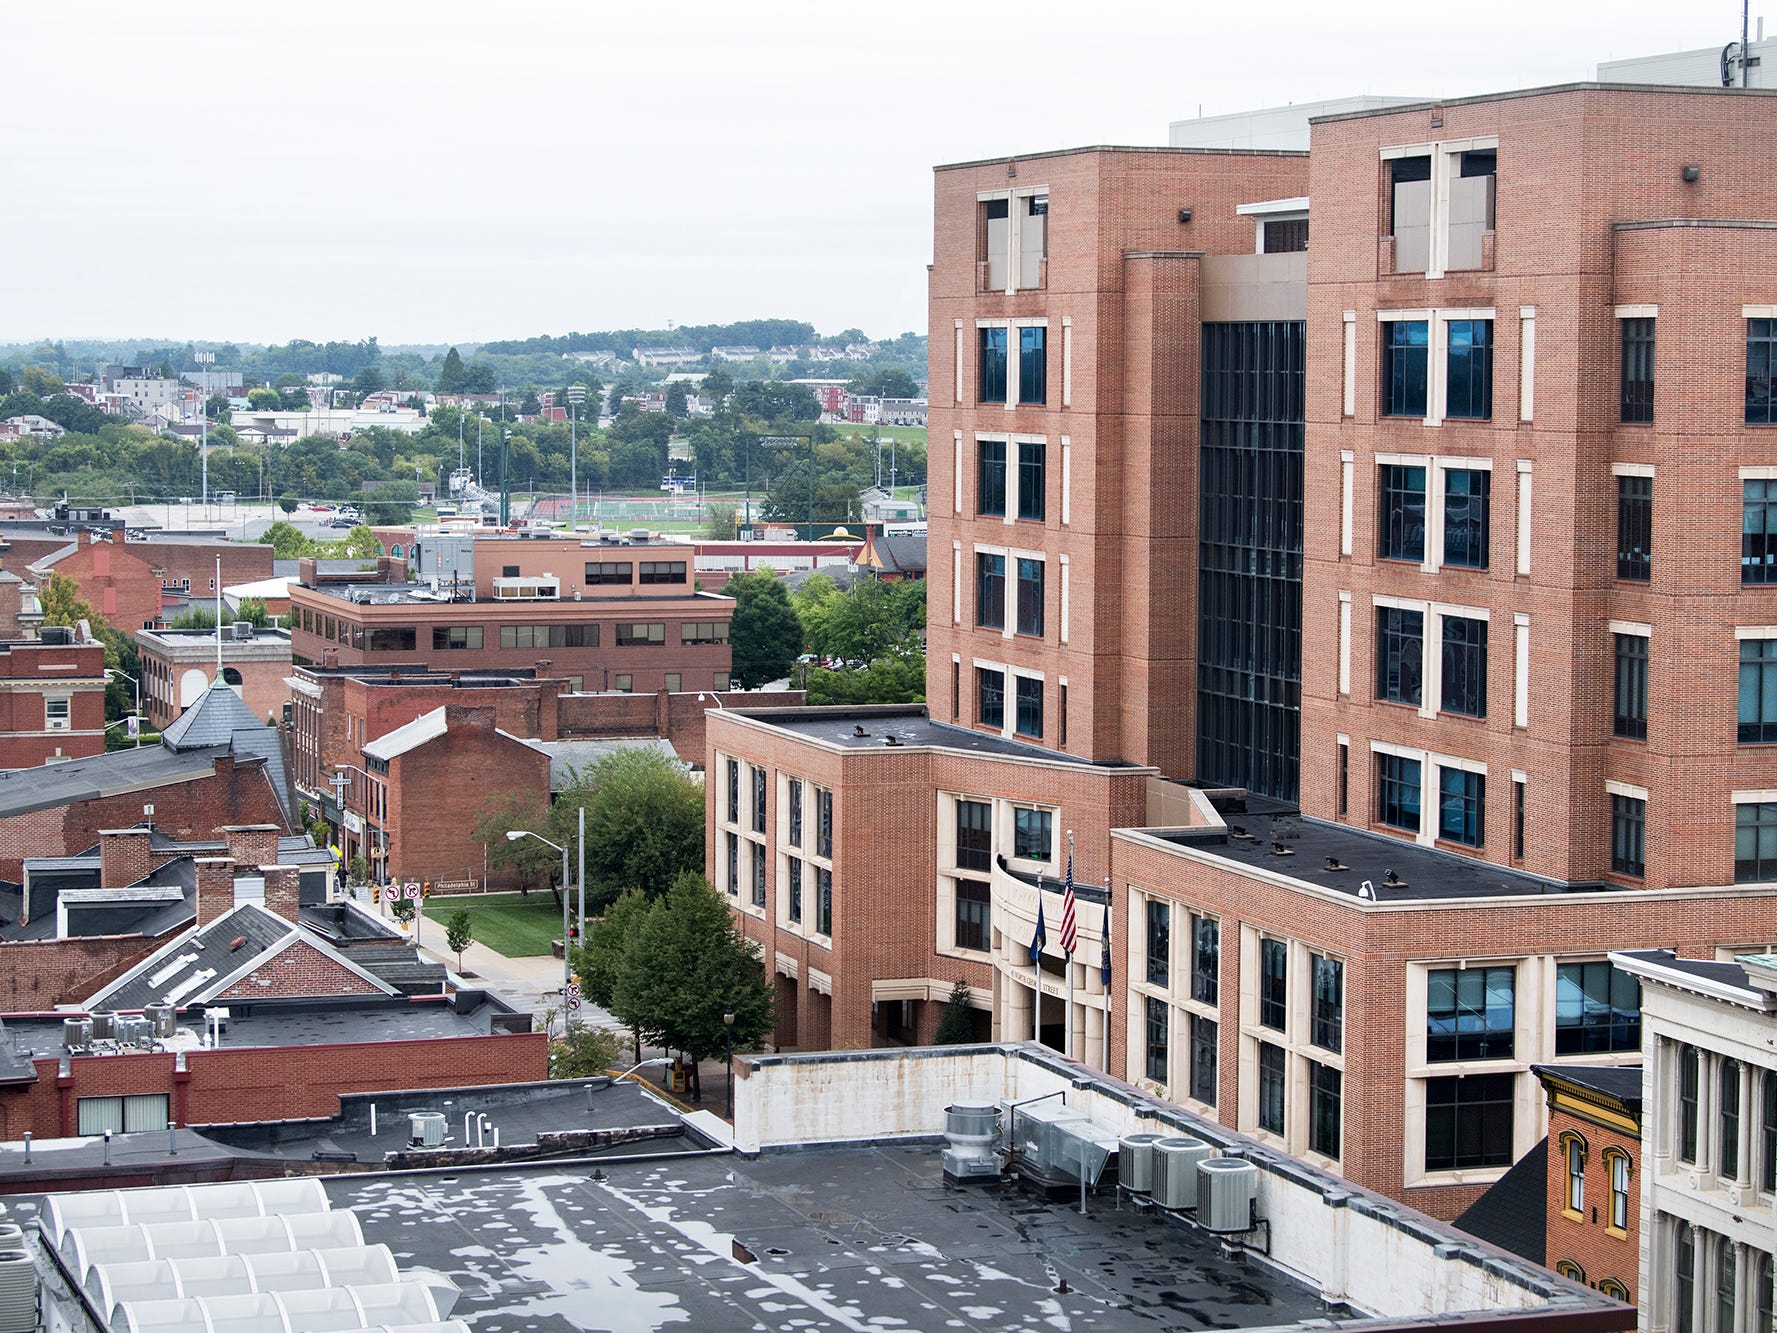 Looking north up North George Street from the roof of the Rupp-Schmidt Building at 2 West Market Street in York. The York County Judicial Center is at right.